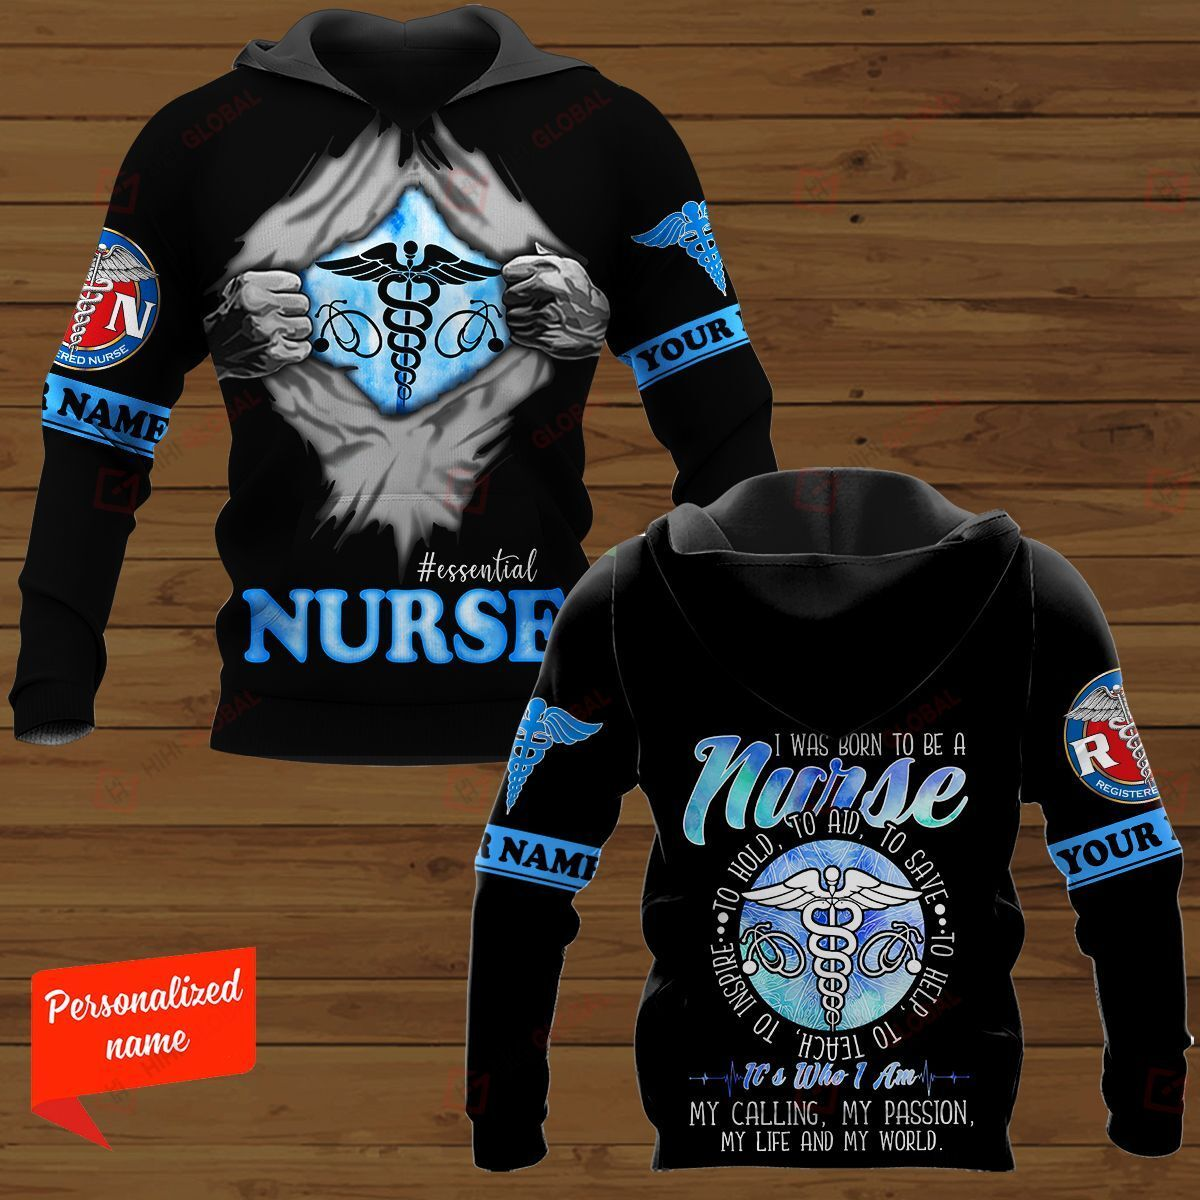 I Was Born To Be A Nurse To Hold To Aid To Save To Help Nurse Personalized ALL OVER PRINTED SHIRTS